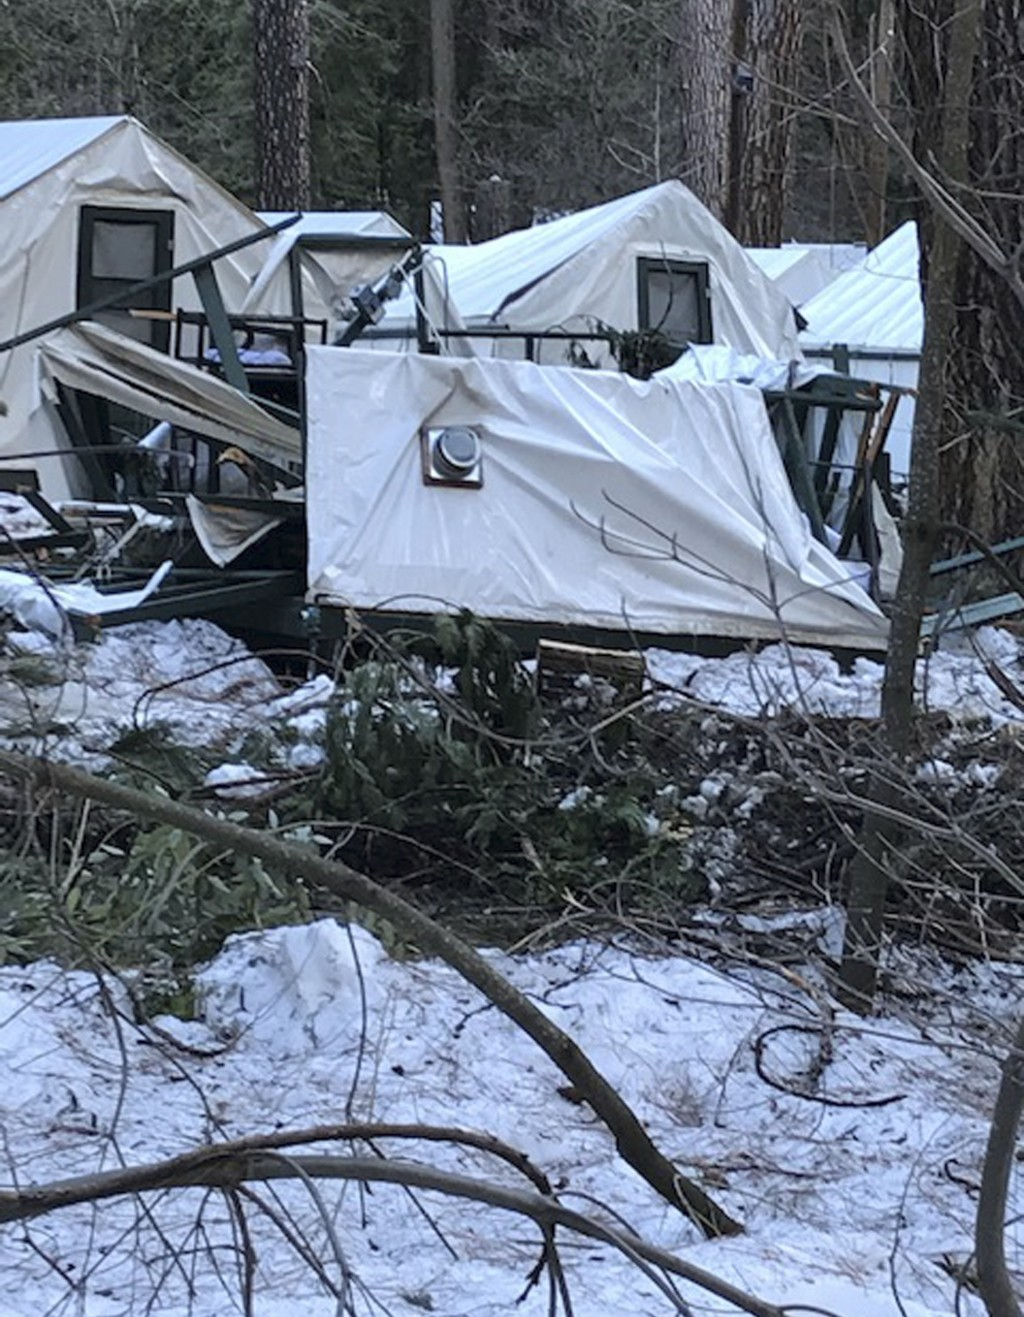 In this photo released Wednesday, March 13, 2019, by the National Park Service, is a damaged tent cabin after the recent heavy snowpack in Yosemite Na